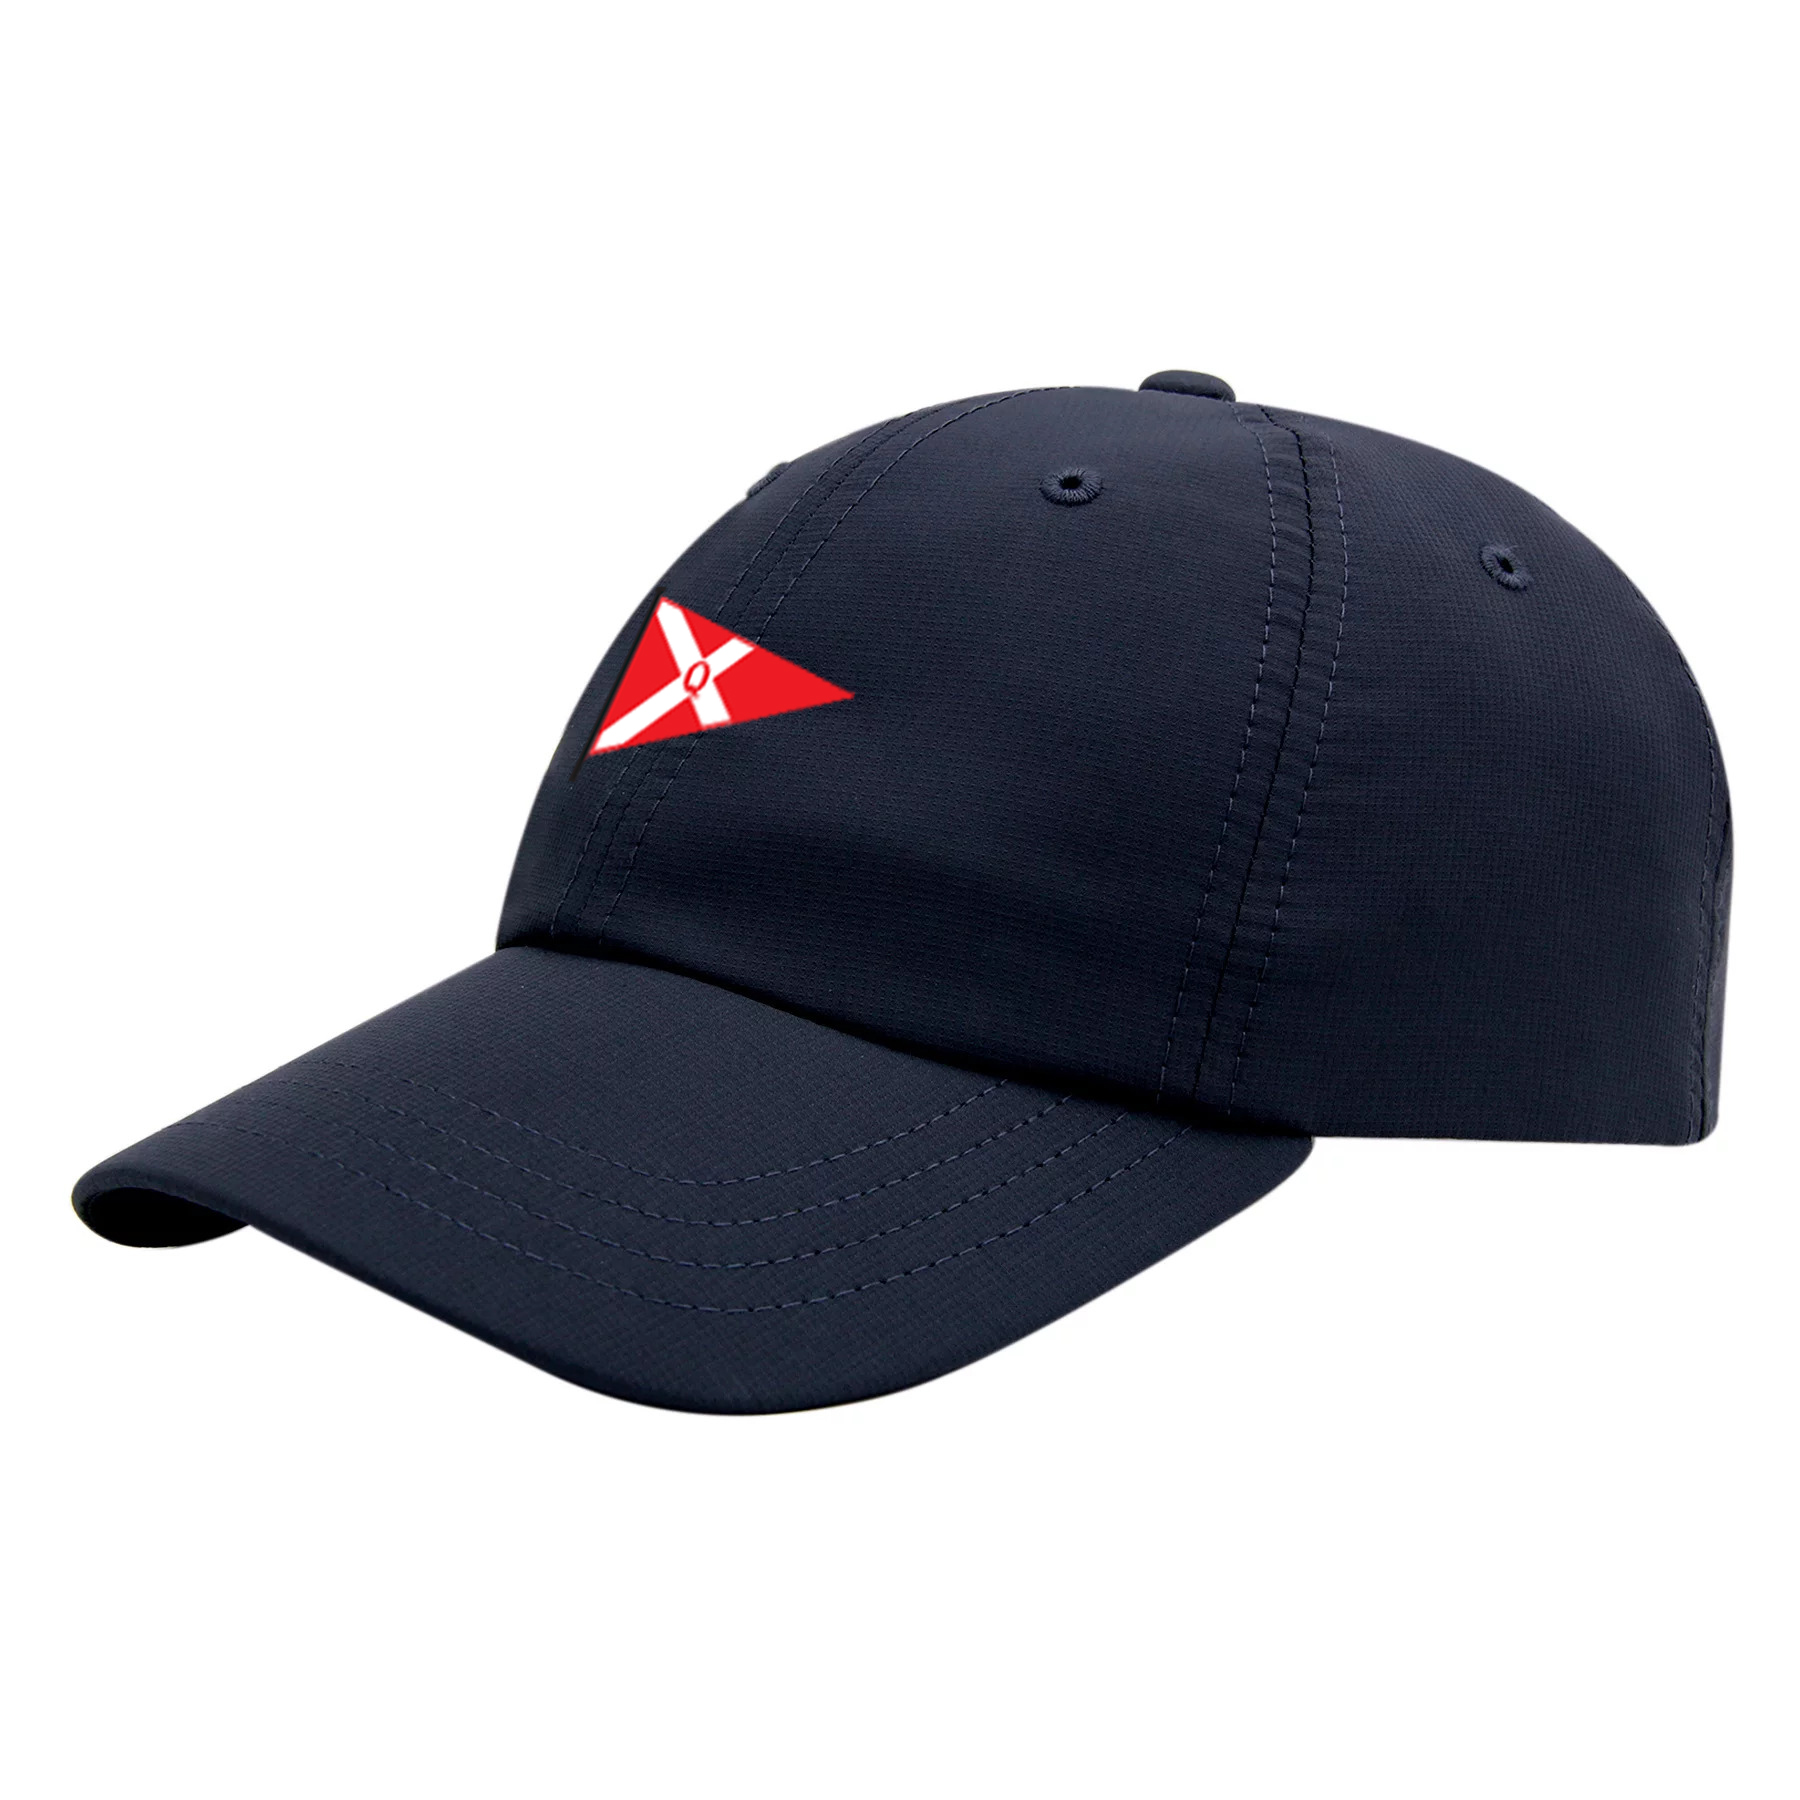 Quissett Yacht Club - Ouray Performance Cap (QYC702)